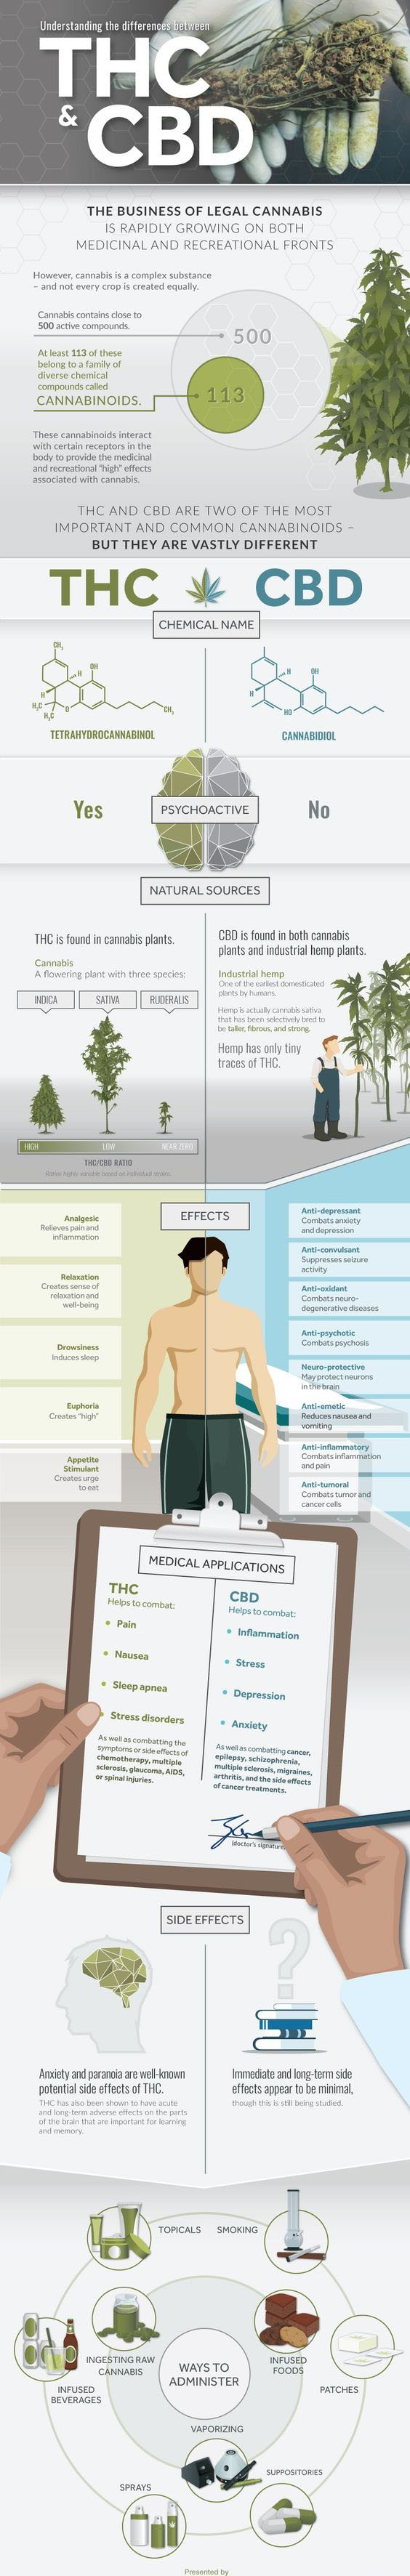 thc vs cbd infographic